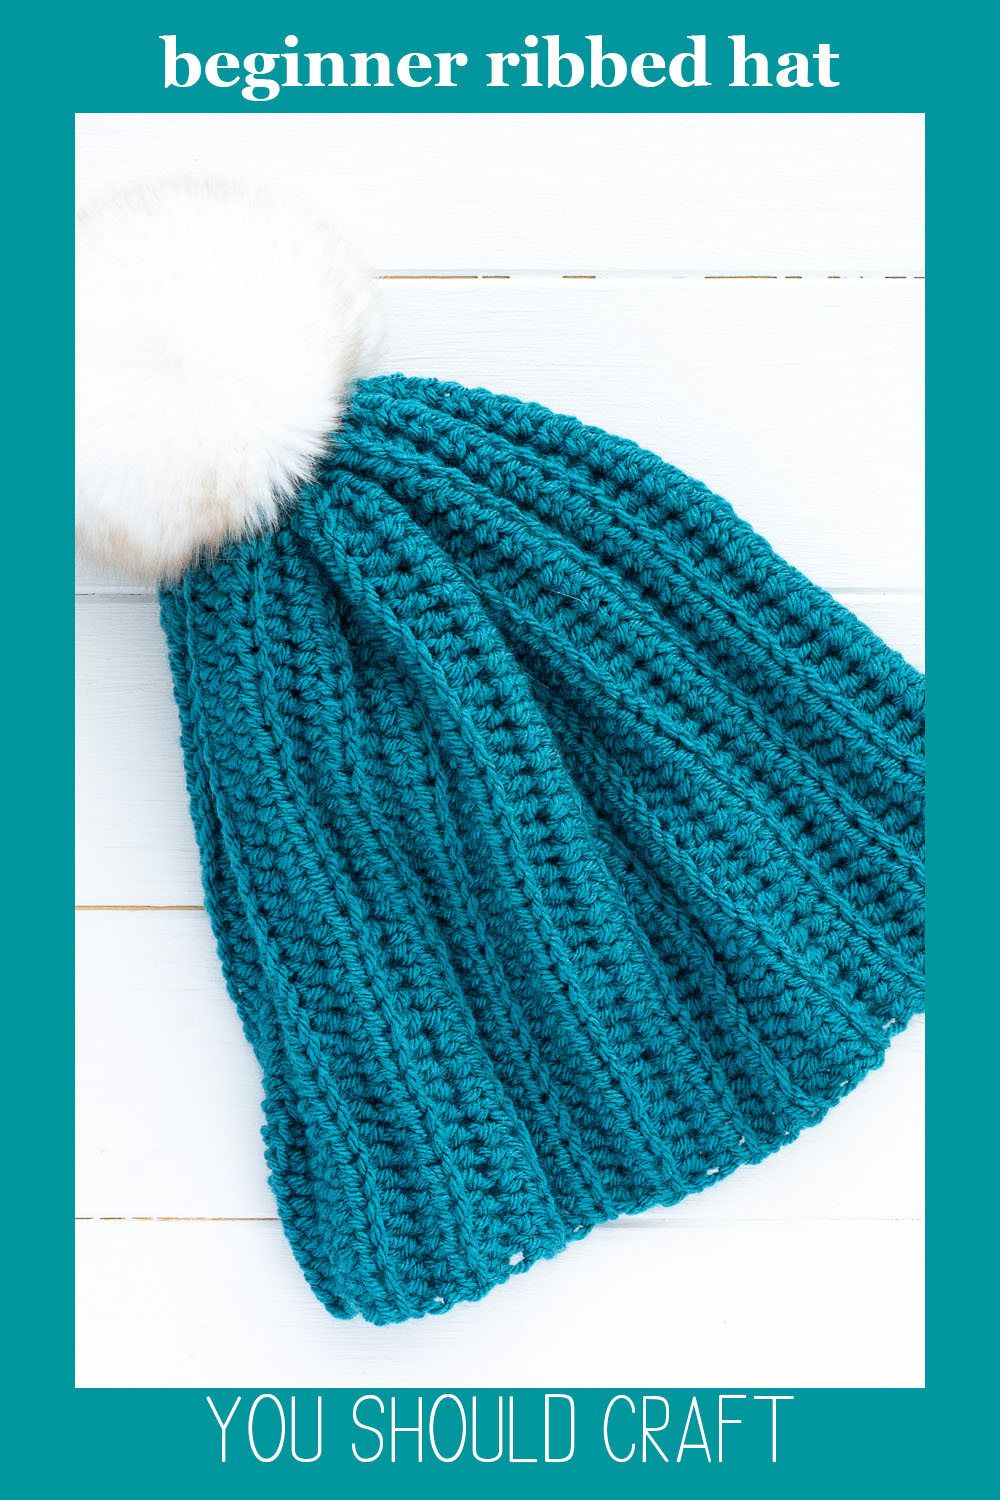 """ribbed beanie crocheted with teal yarn with a white fur pom and text overlay """"beginner ribbed hat - you should craft"""""""